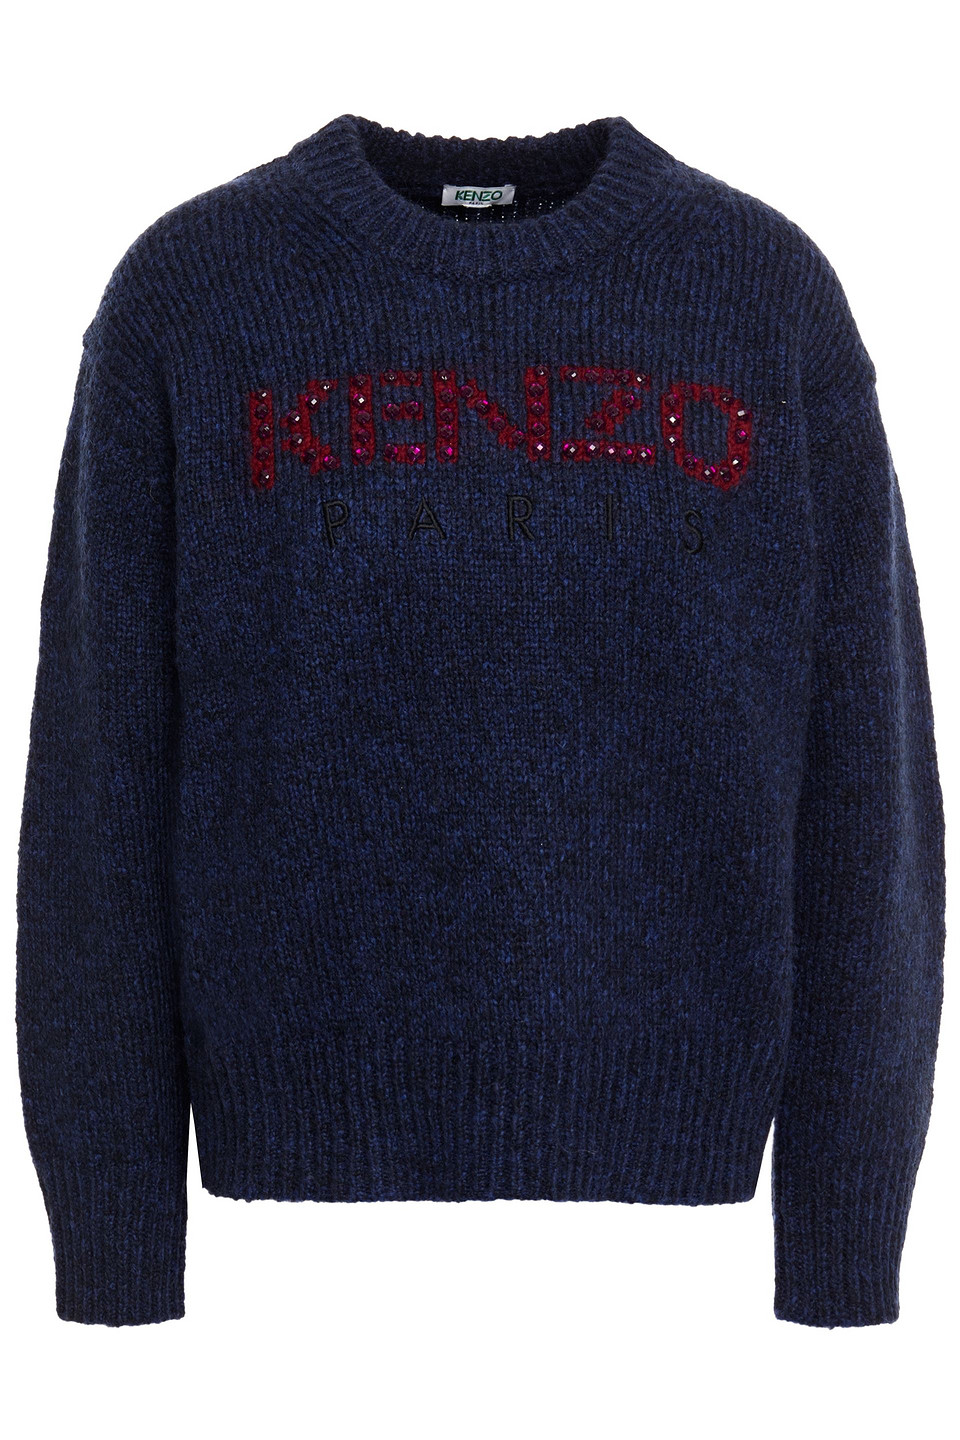 KENZO | Kenzo Woman Crystal-embellished Embroidered Brushed Intarsia-knit Sweater Navy | Clouty